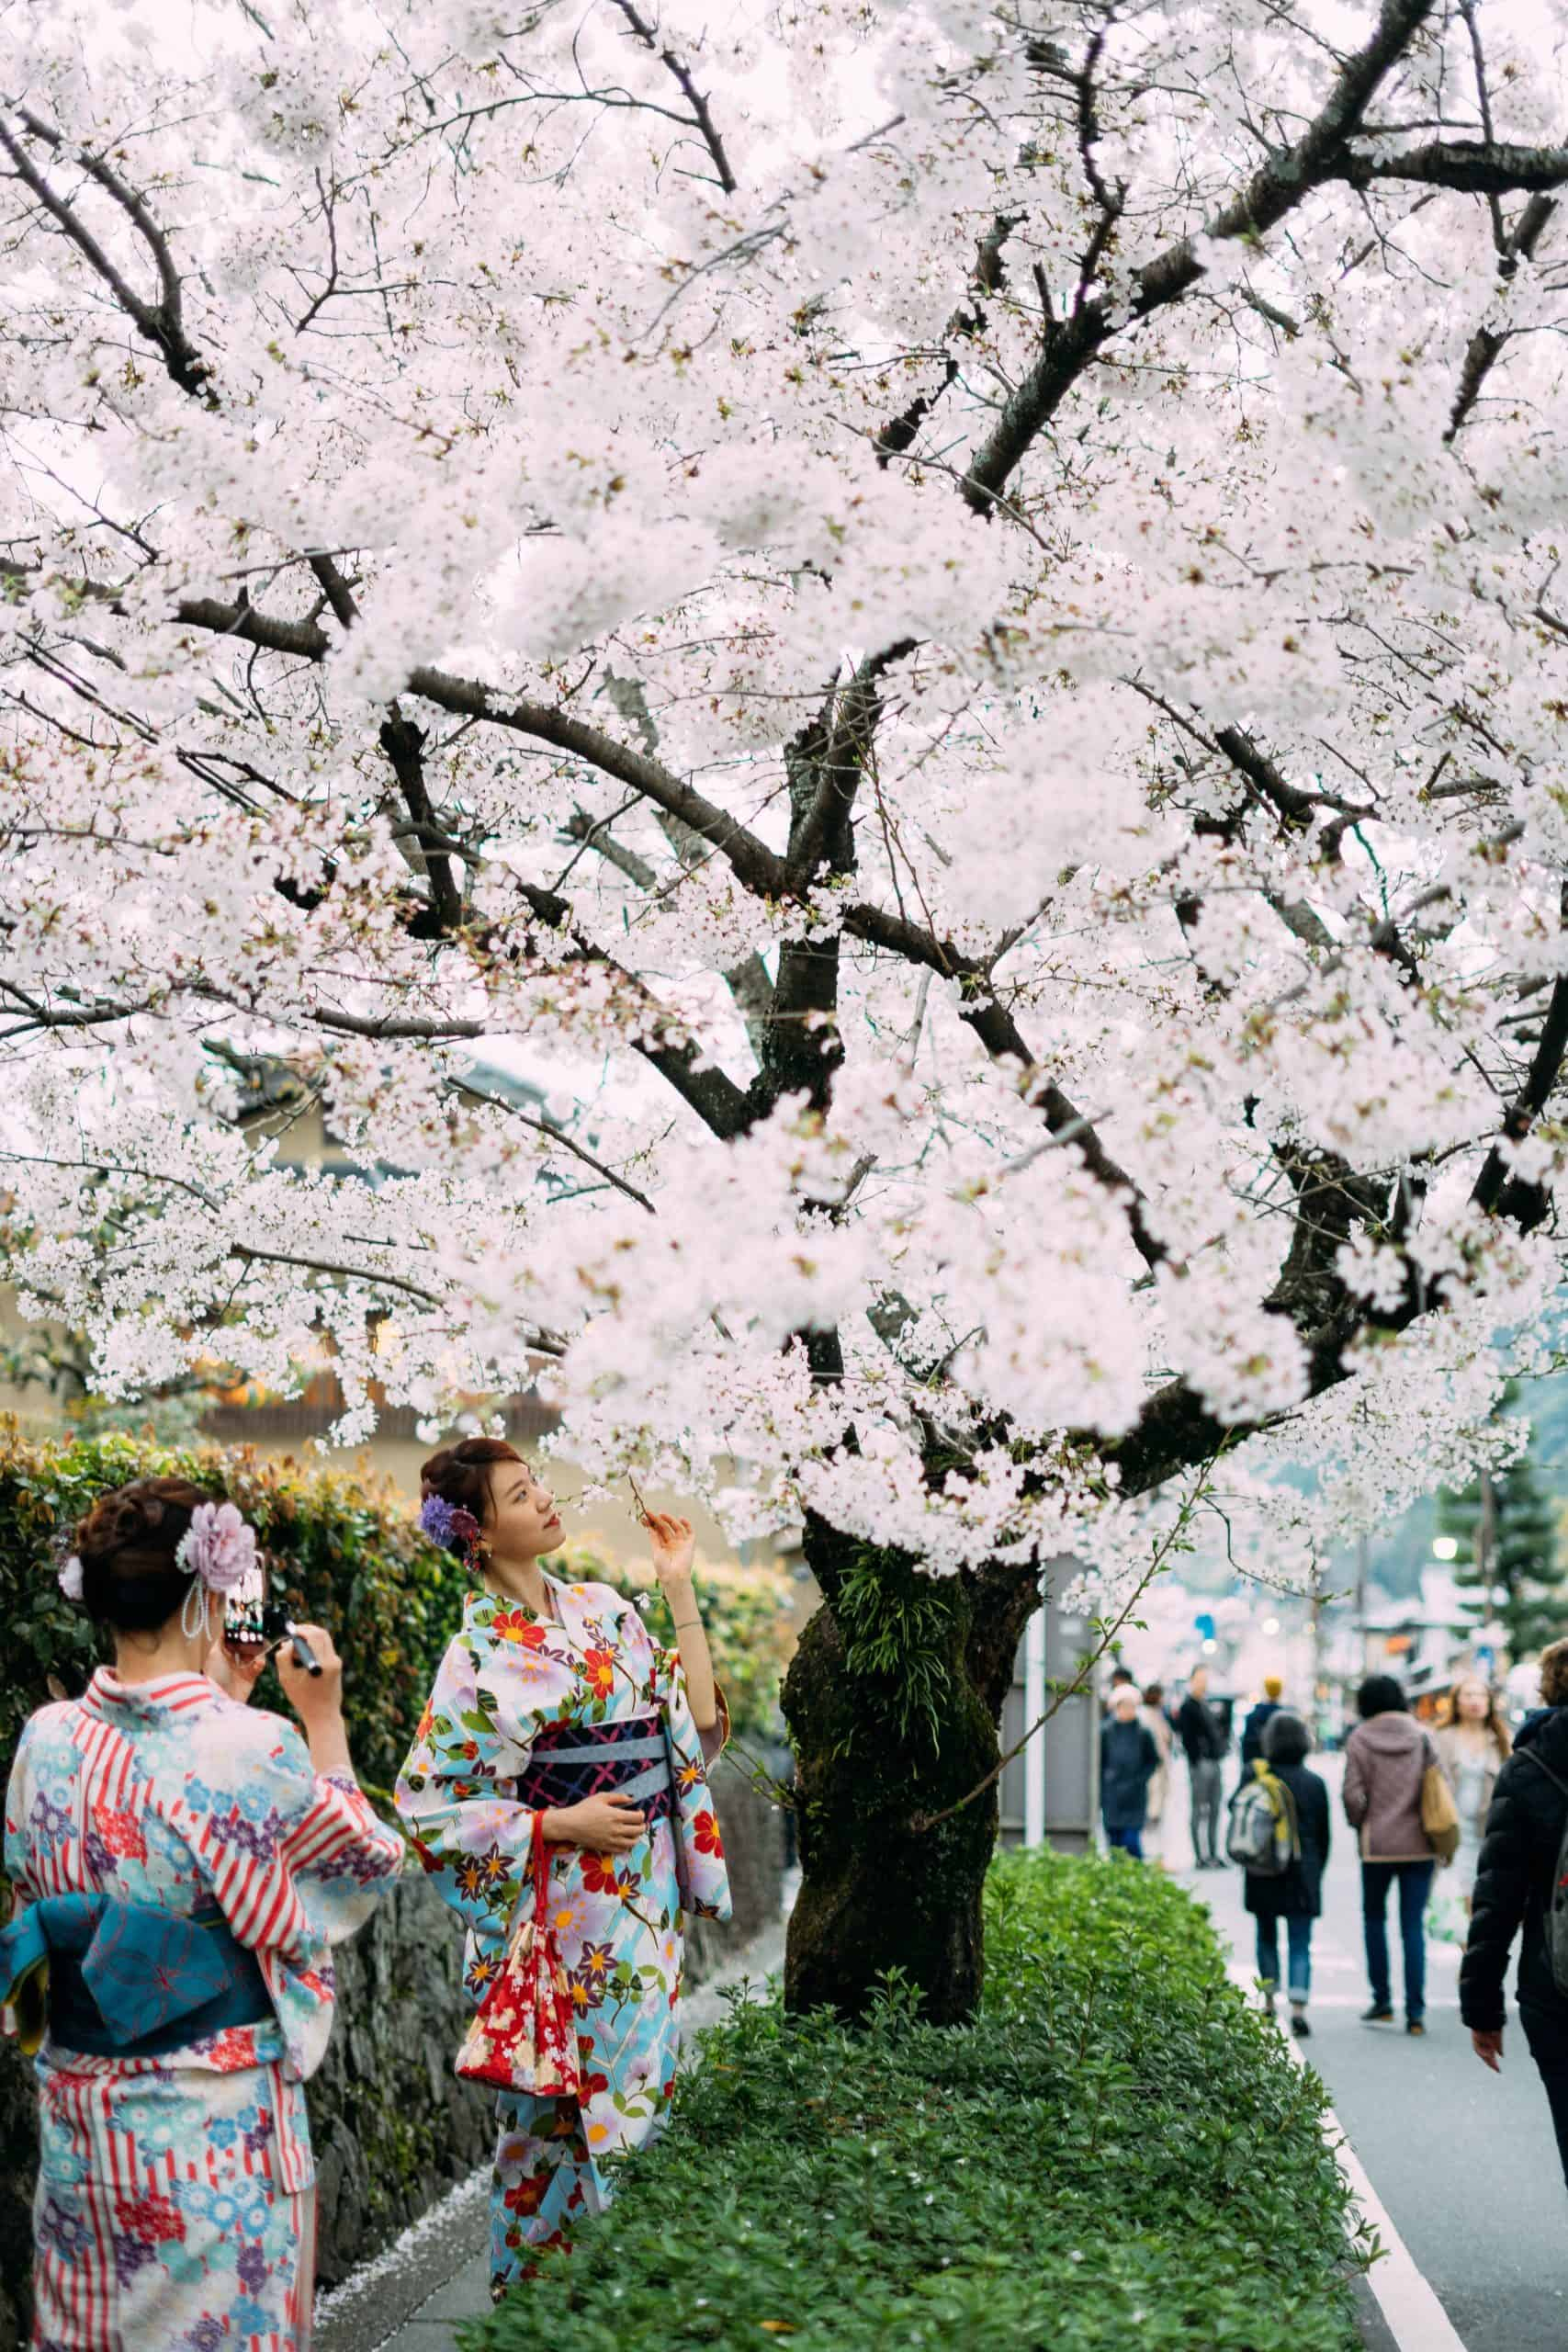 When is the Cherry Blossom Season in Tokyo